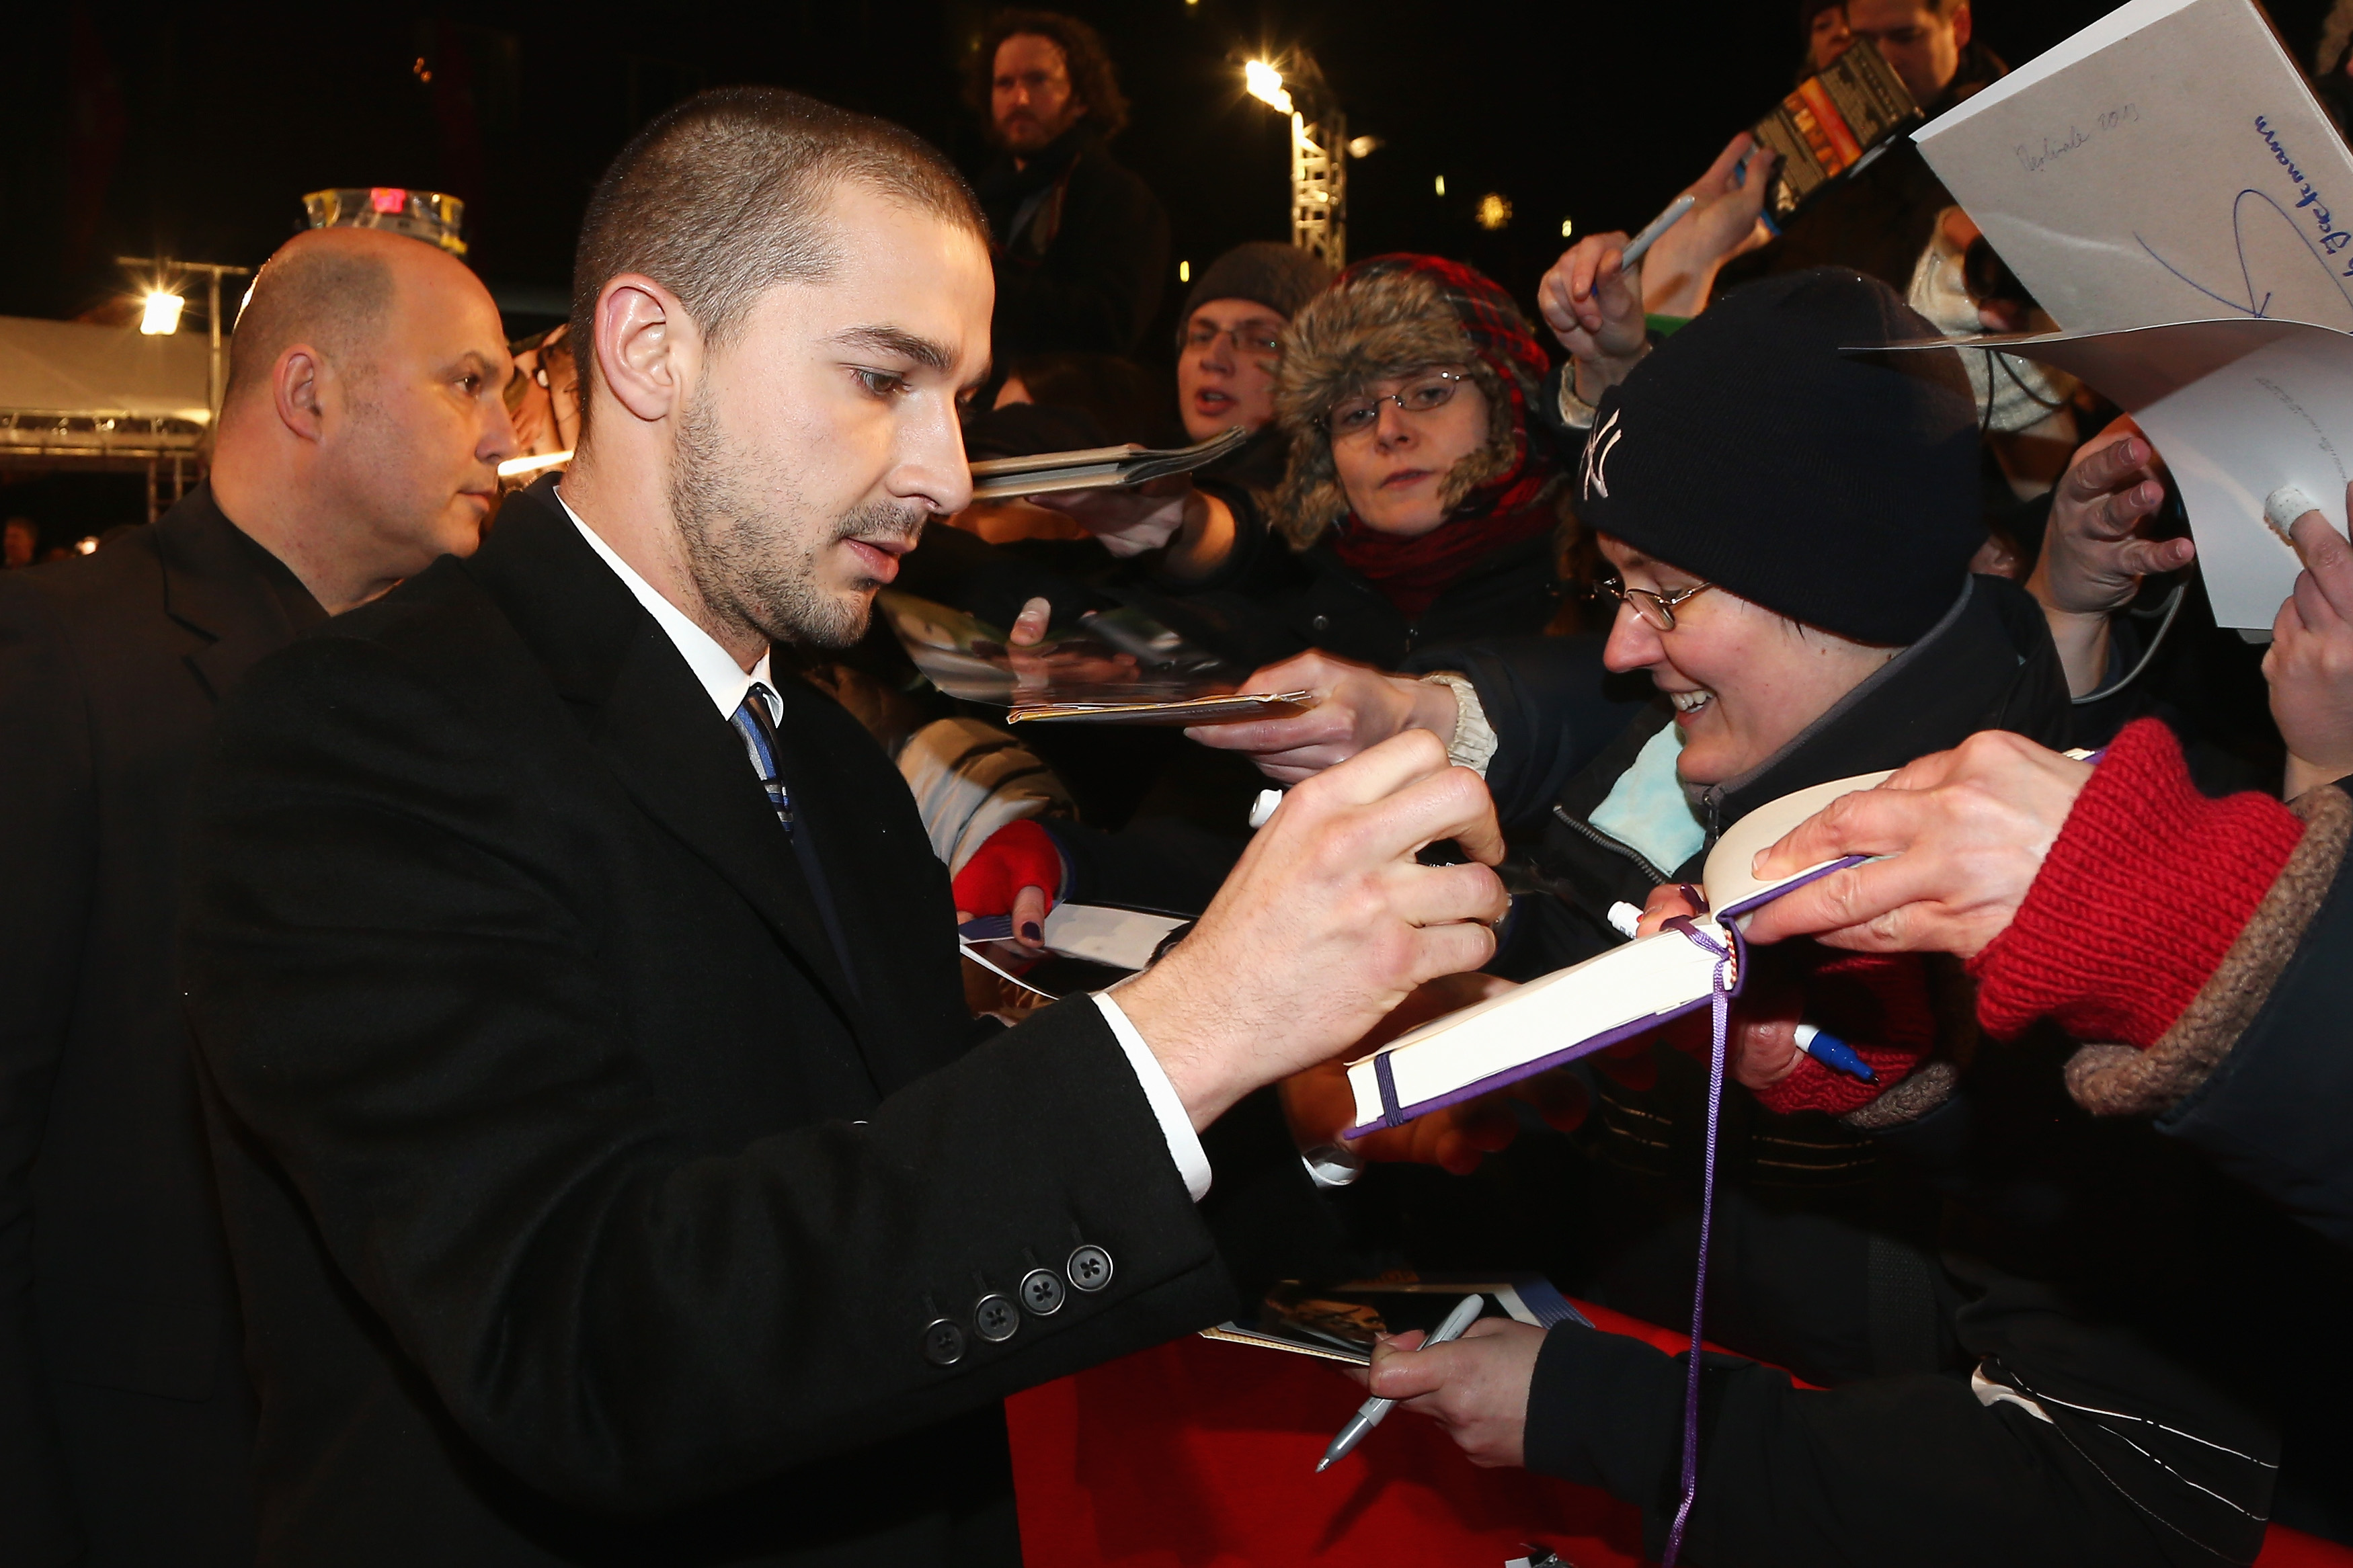 Shia LaBeouf signed autographs on Saturday at the premiere of The Necessary Death of Charlie Countryman.